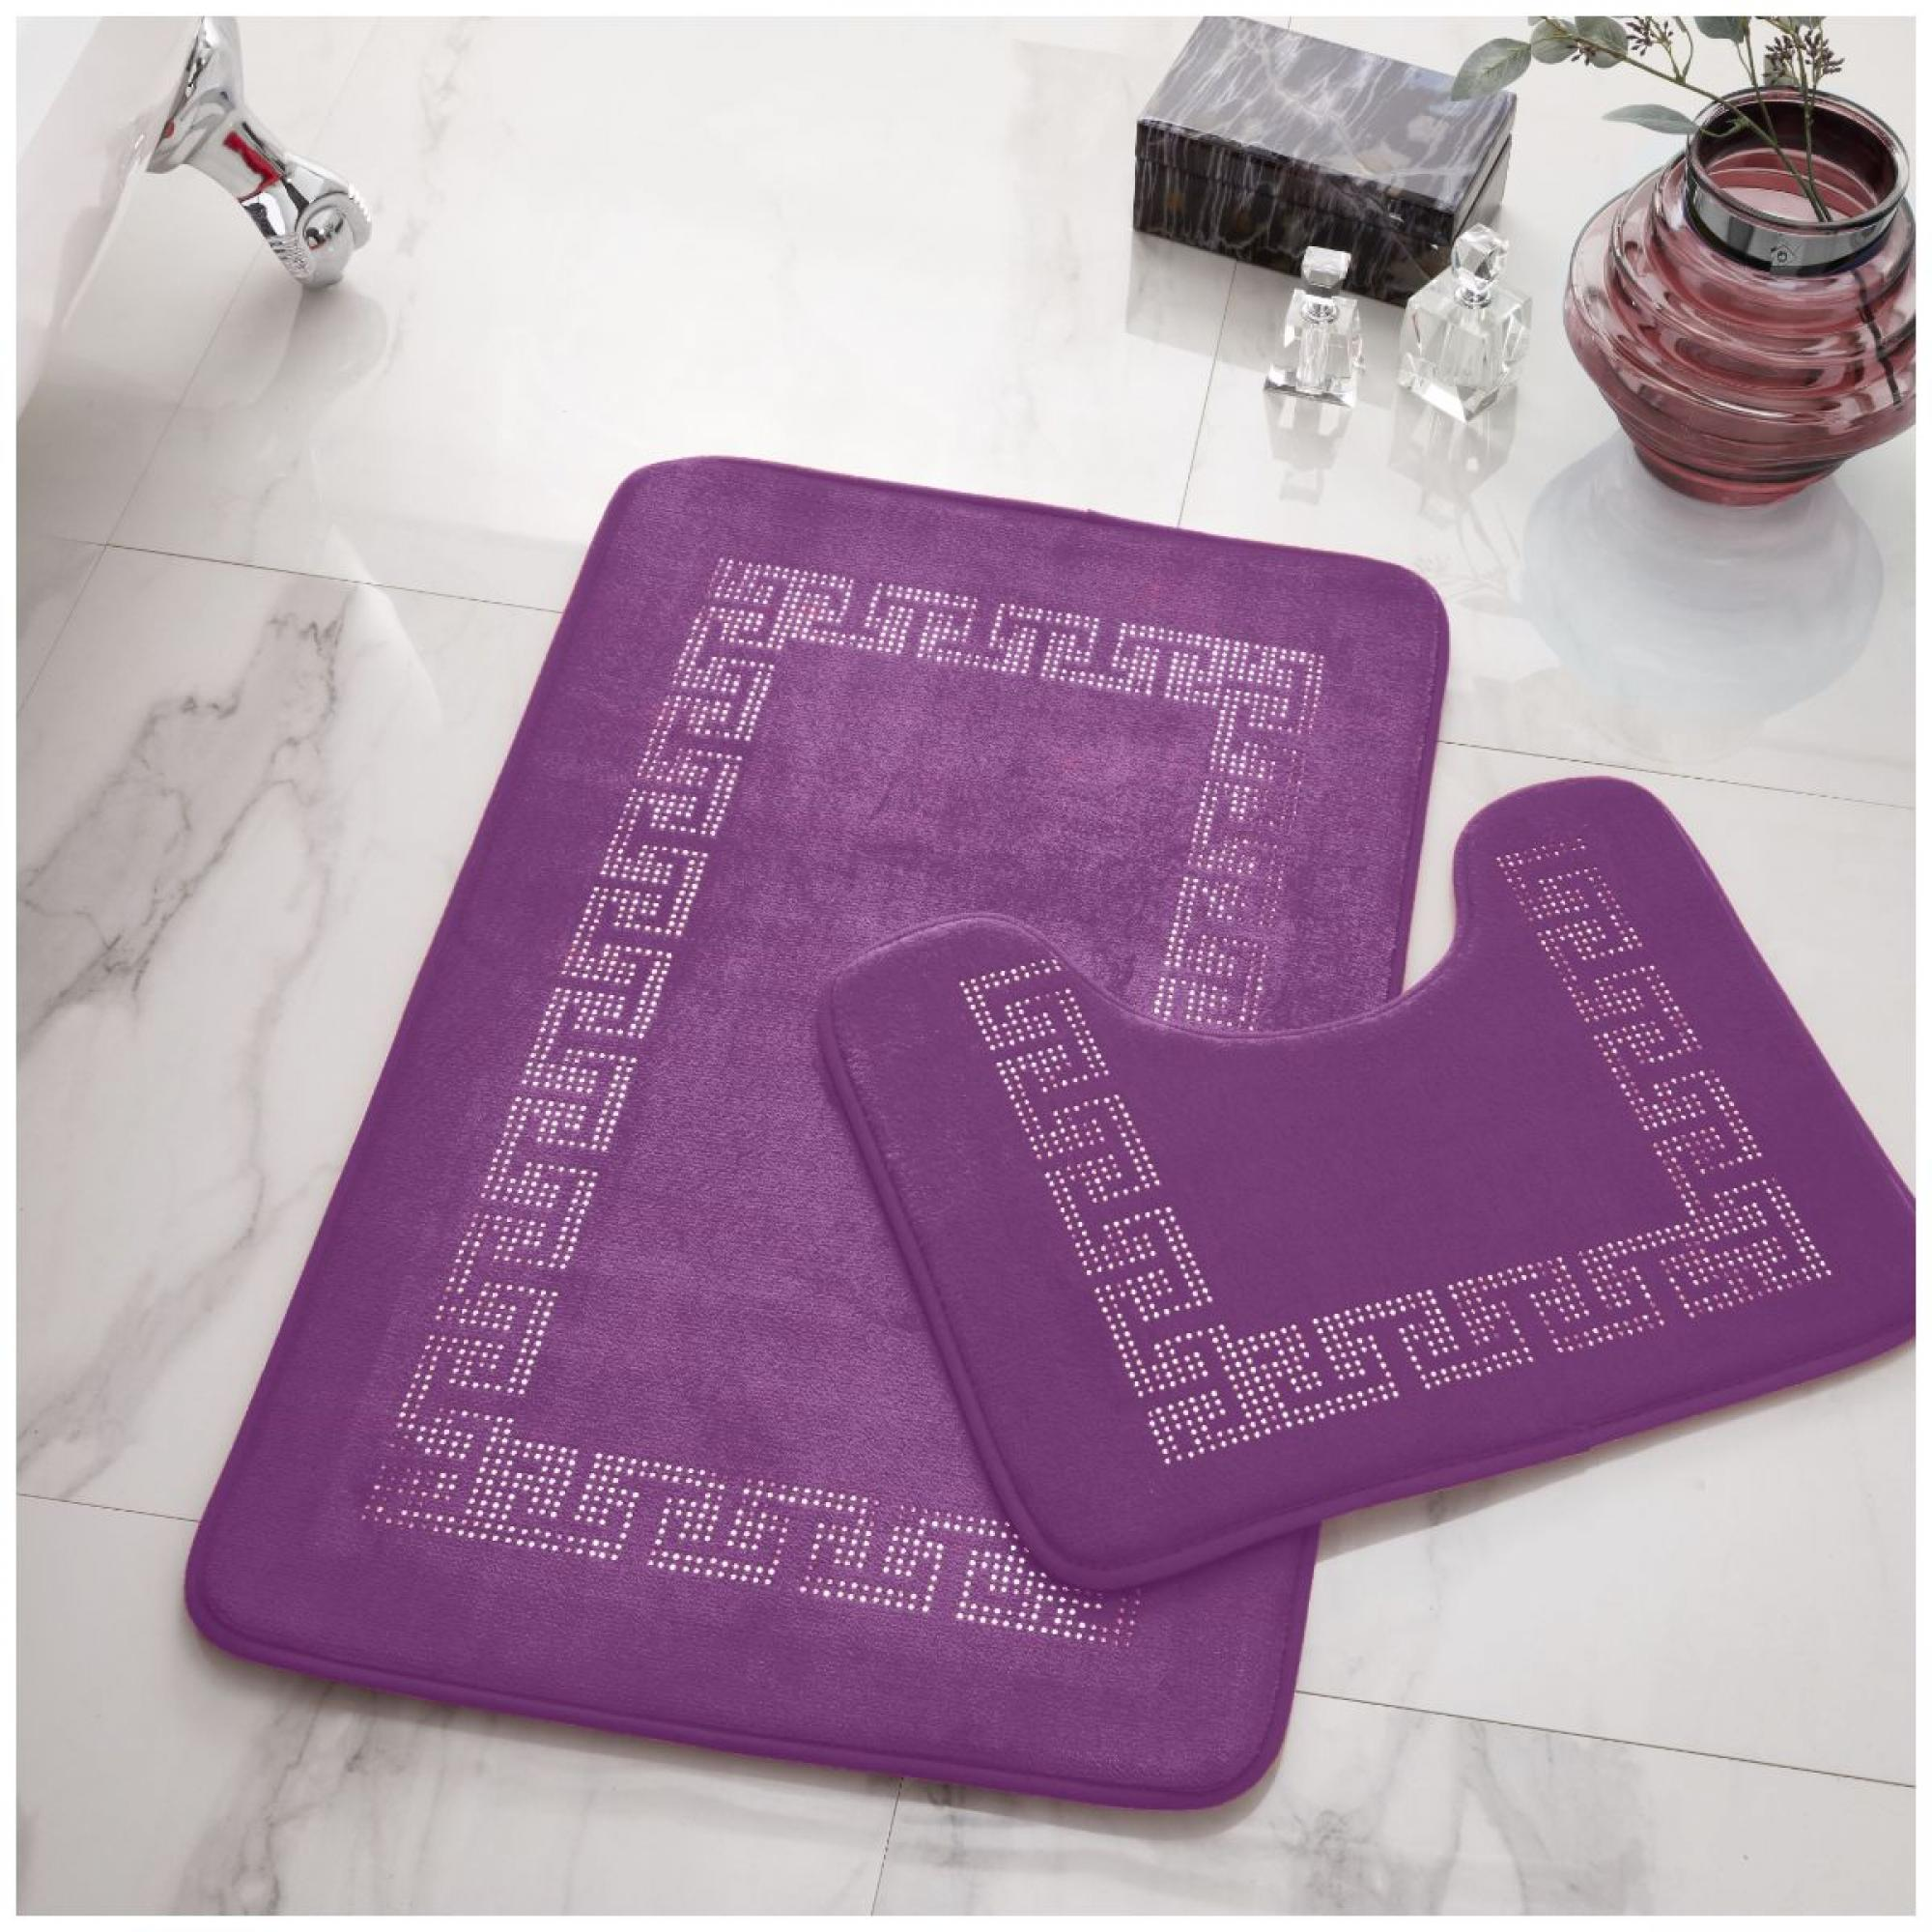 2PC DIAMOND MEMORY BATH MAT PURPLE - 41167099